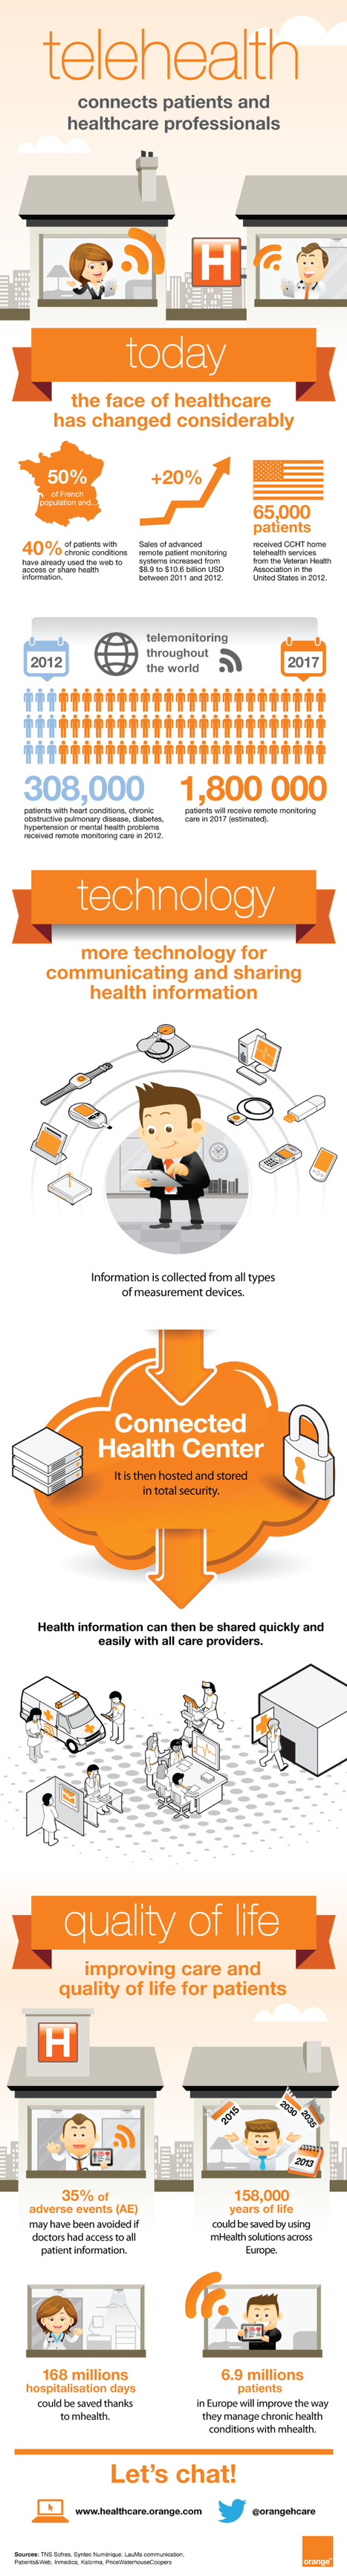 infographic - telehealth connects patients and healthcare professionals | La Santé dans le Cloud | Scoop.it